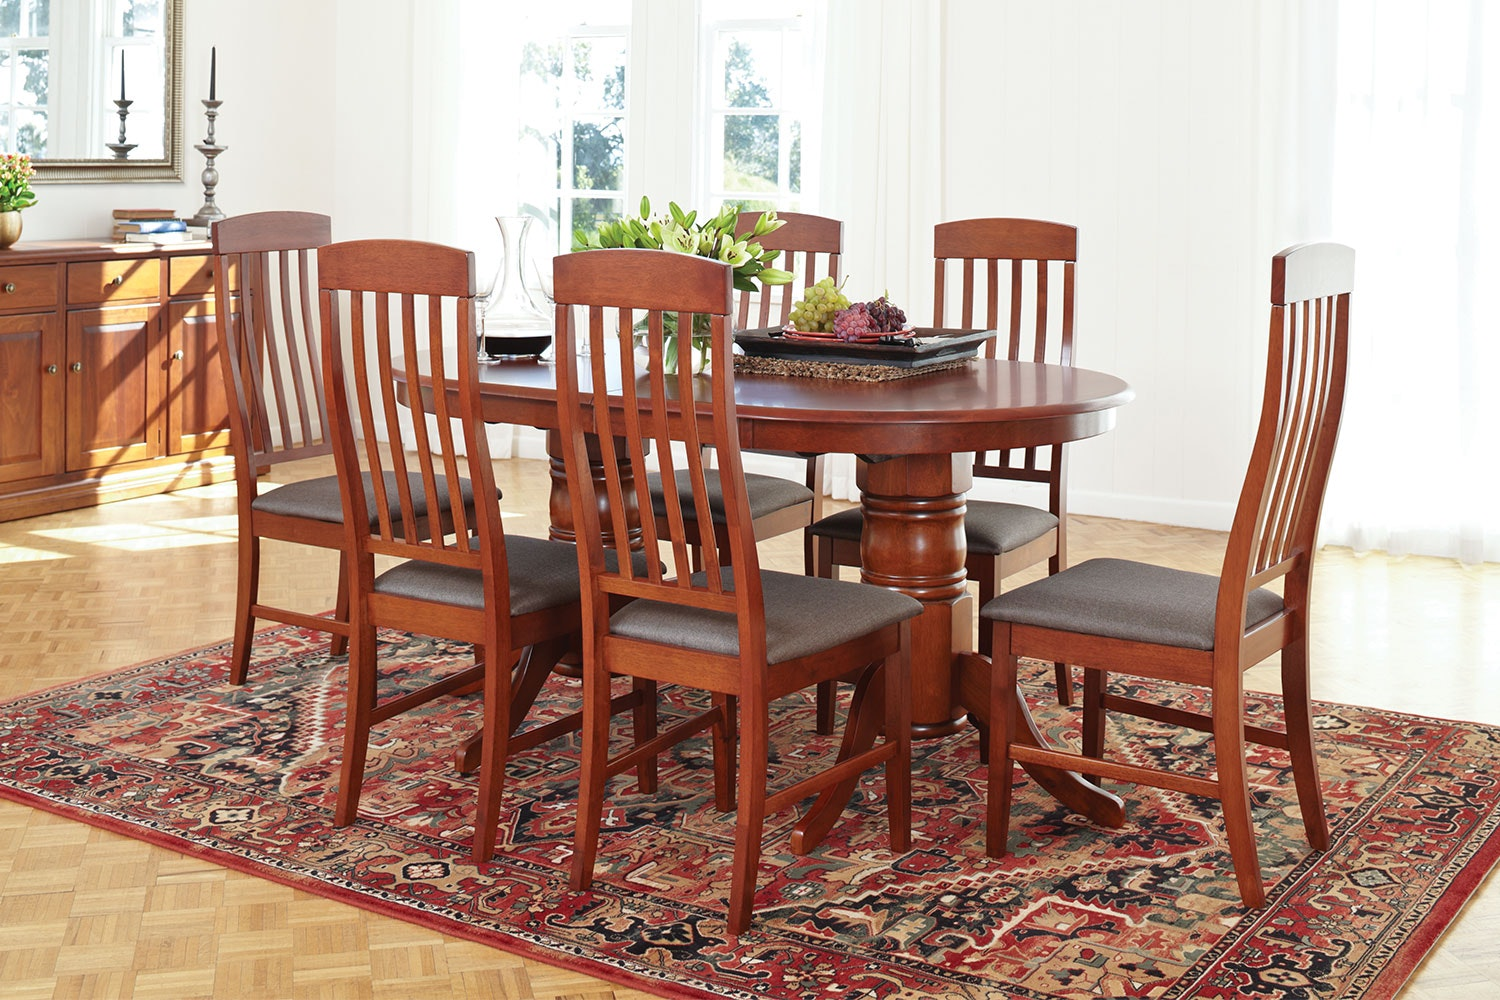 Caprice 7 Piece Extension Dining Suite by Nero Furniture